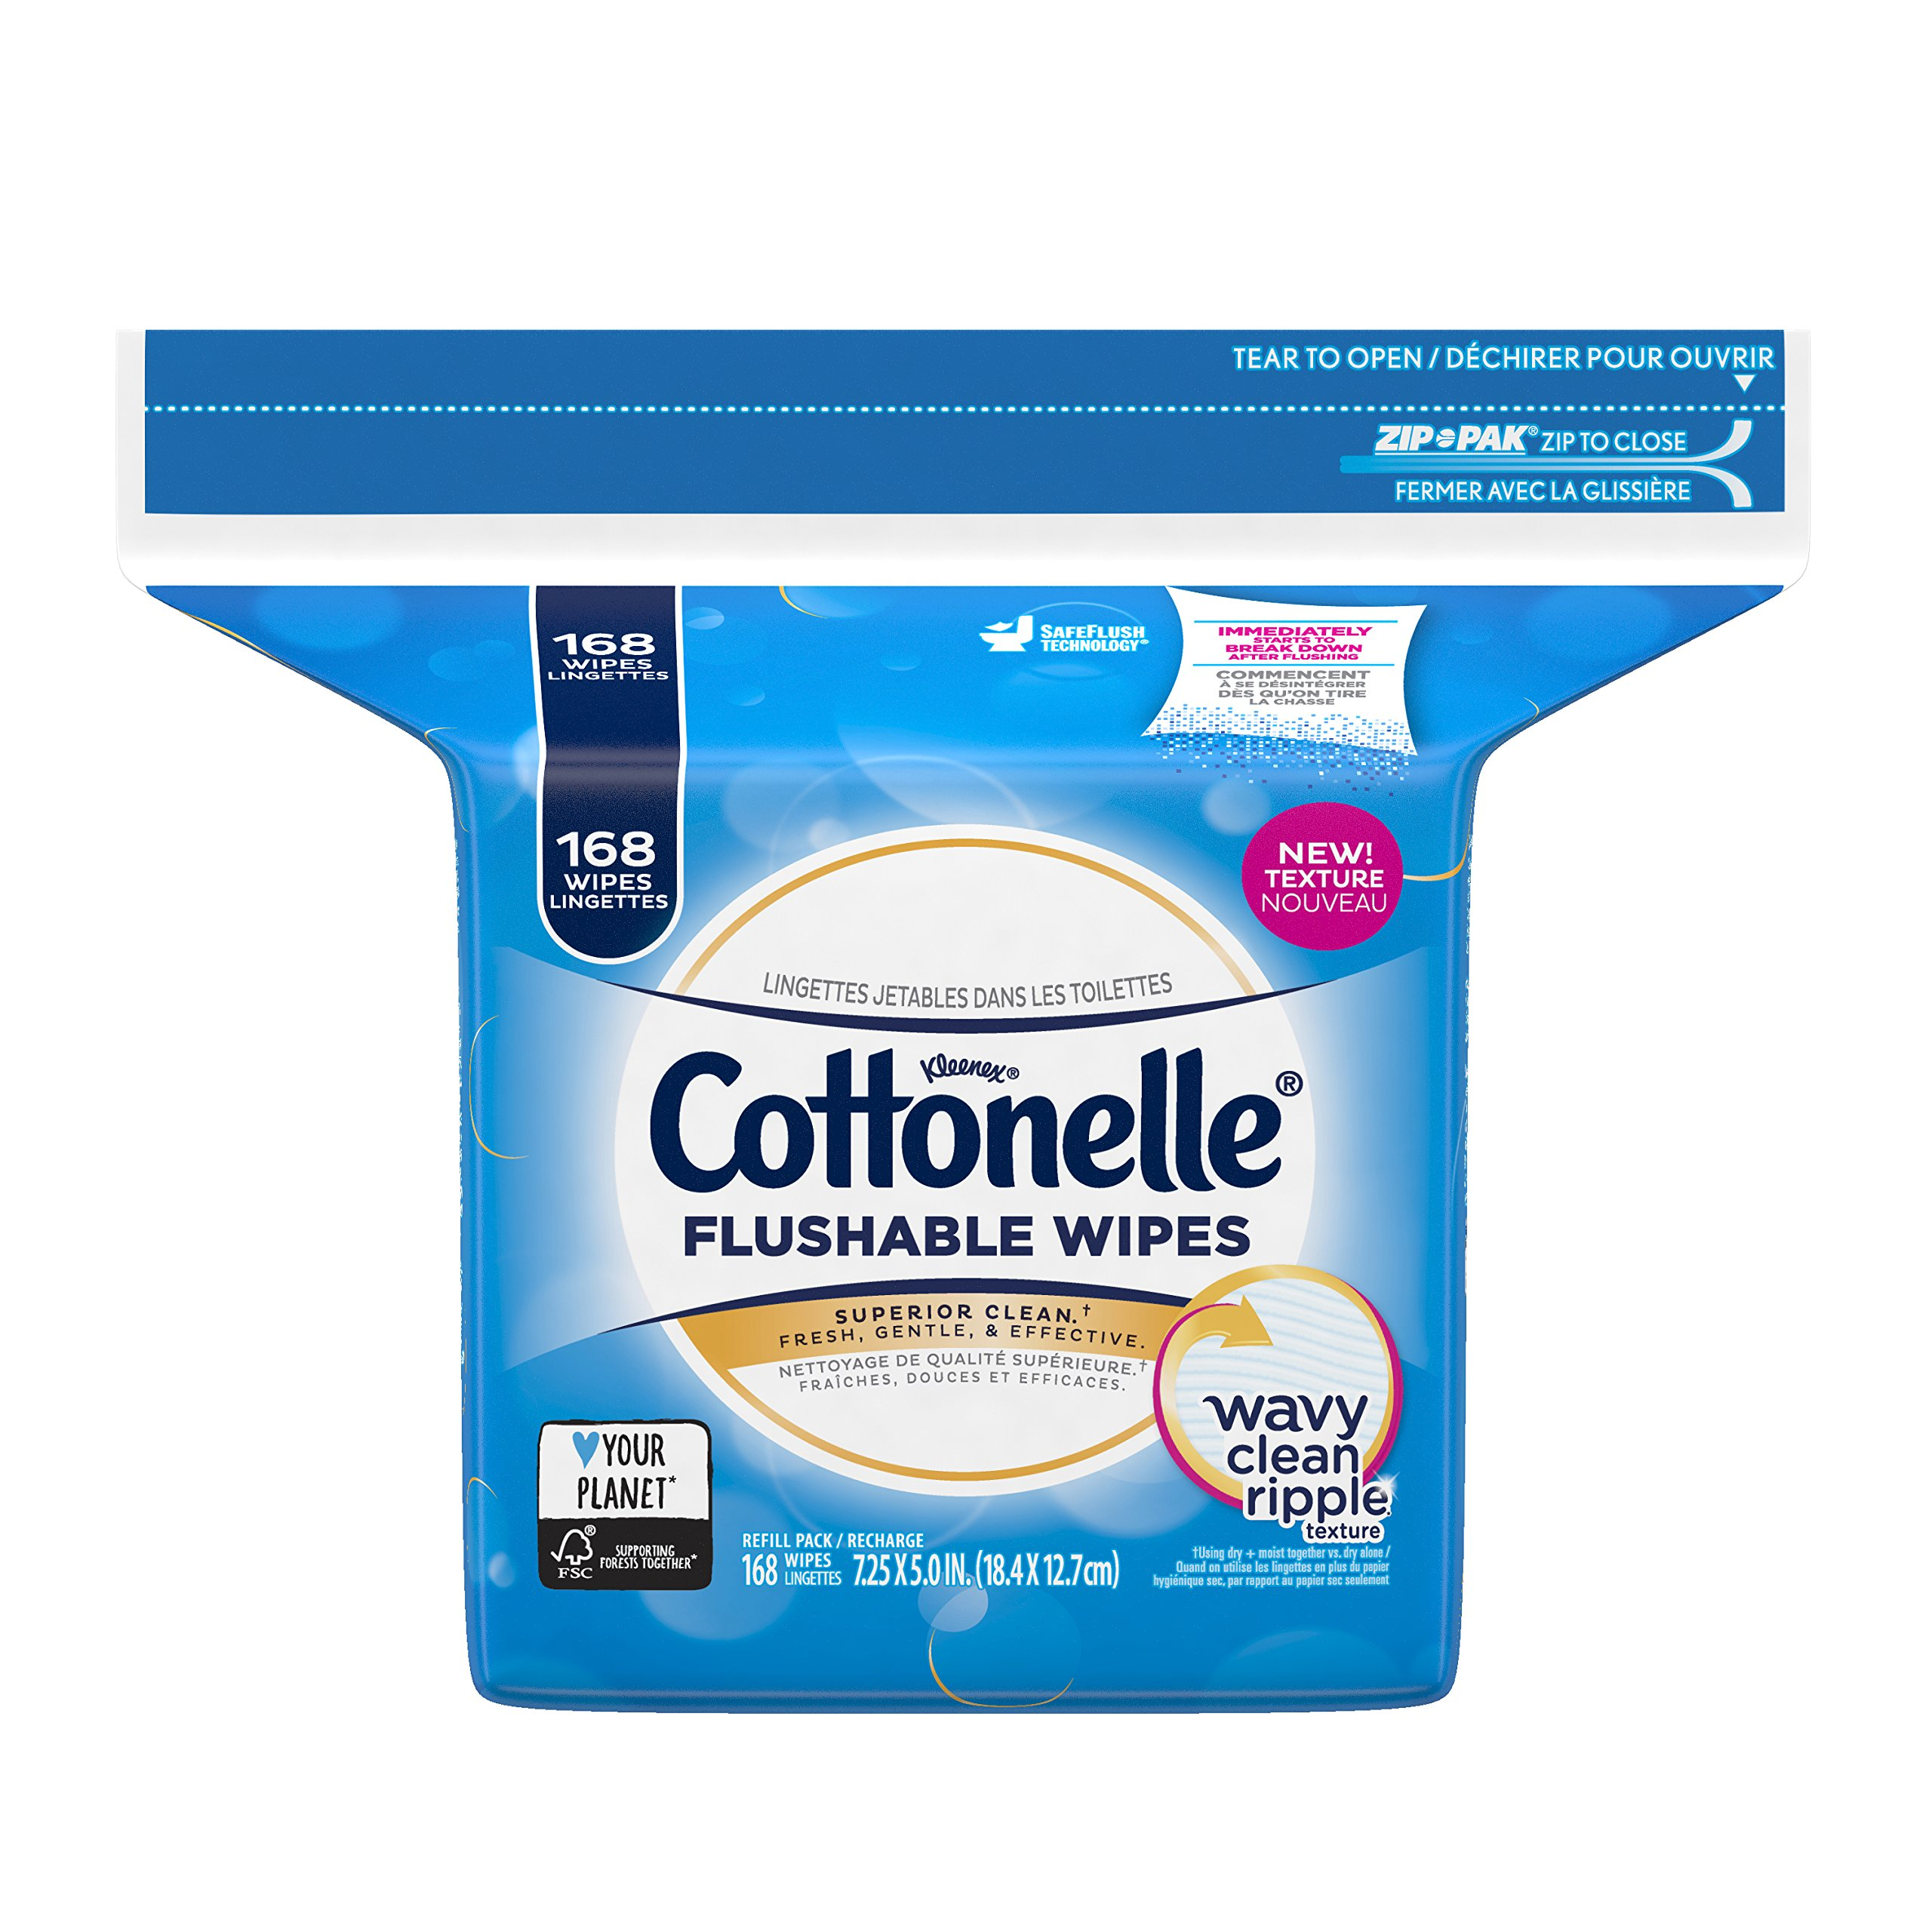 Cottonelle FreshCare Flushable Wipes Refill, 168 Flushable Wet Wipes (Packaging May Vary)